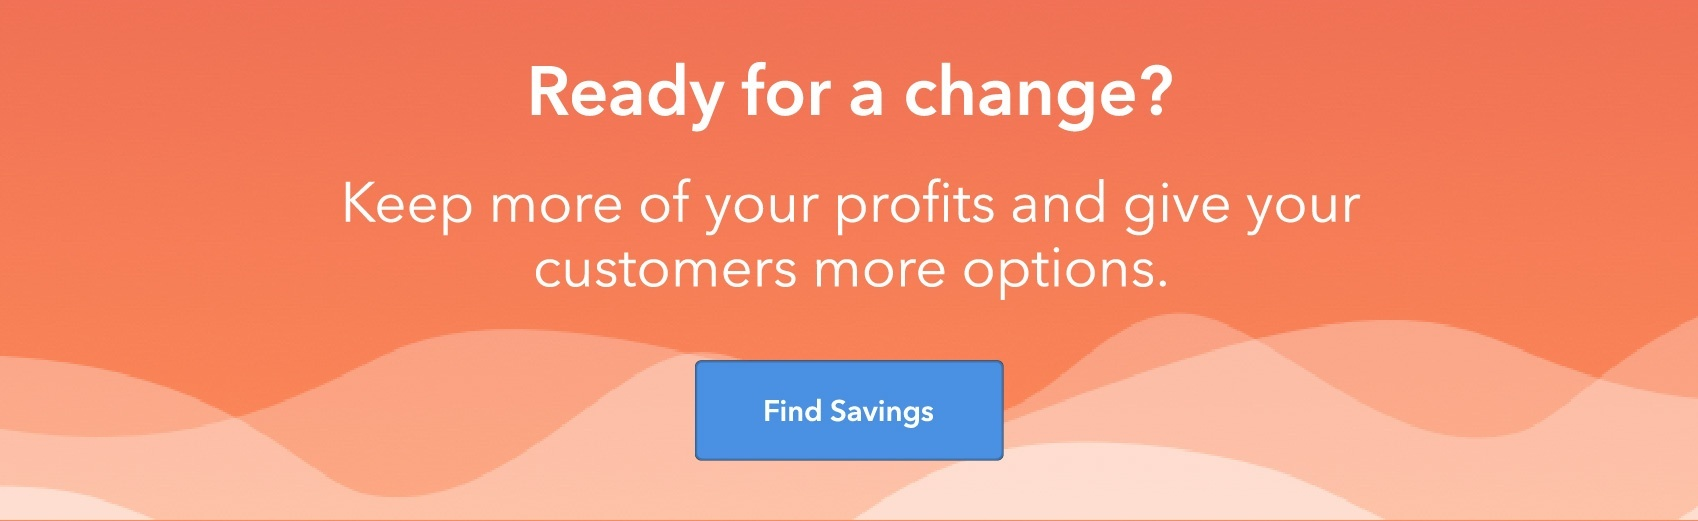 Ready for a change? Keep more of your profits and give your customers more options. Find savings.